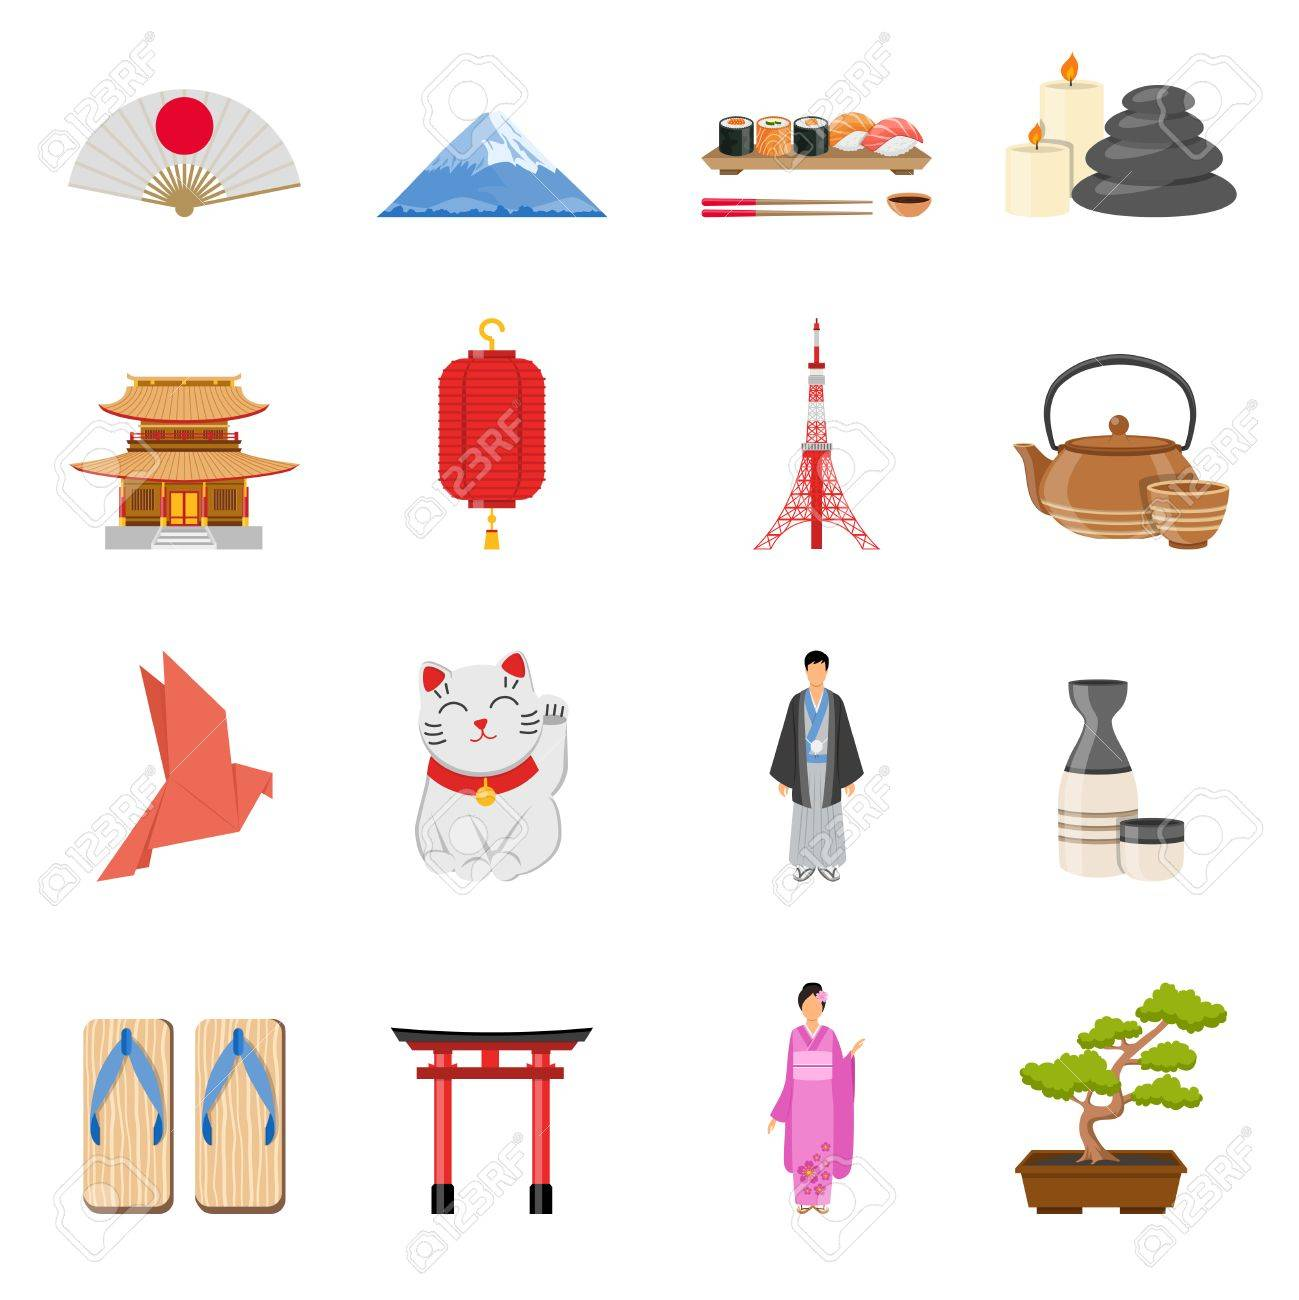 Japanese Culture Traditions And National Symbols Flat Icons